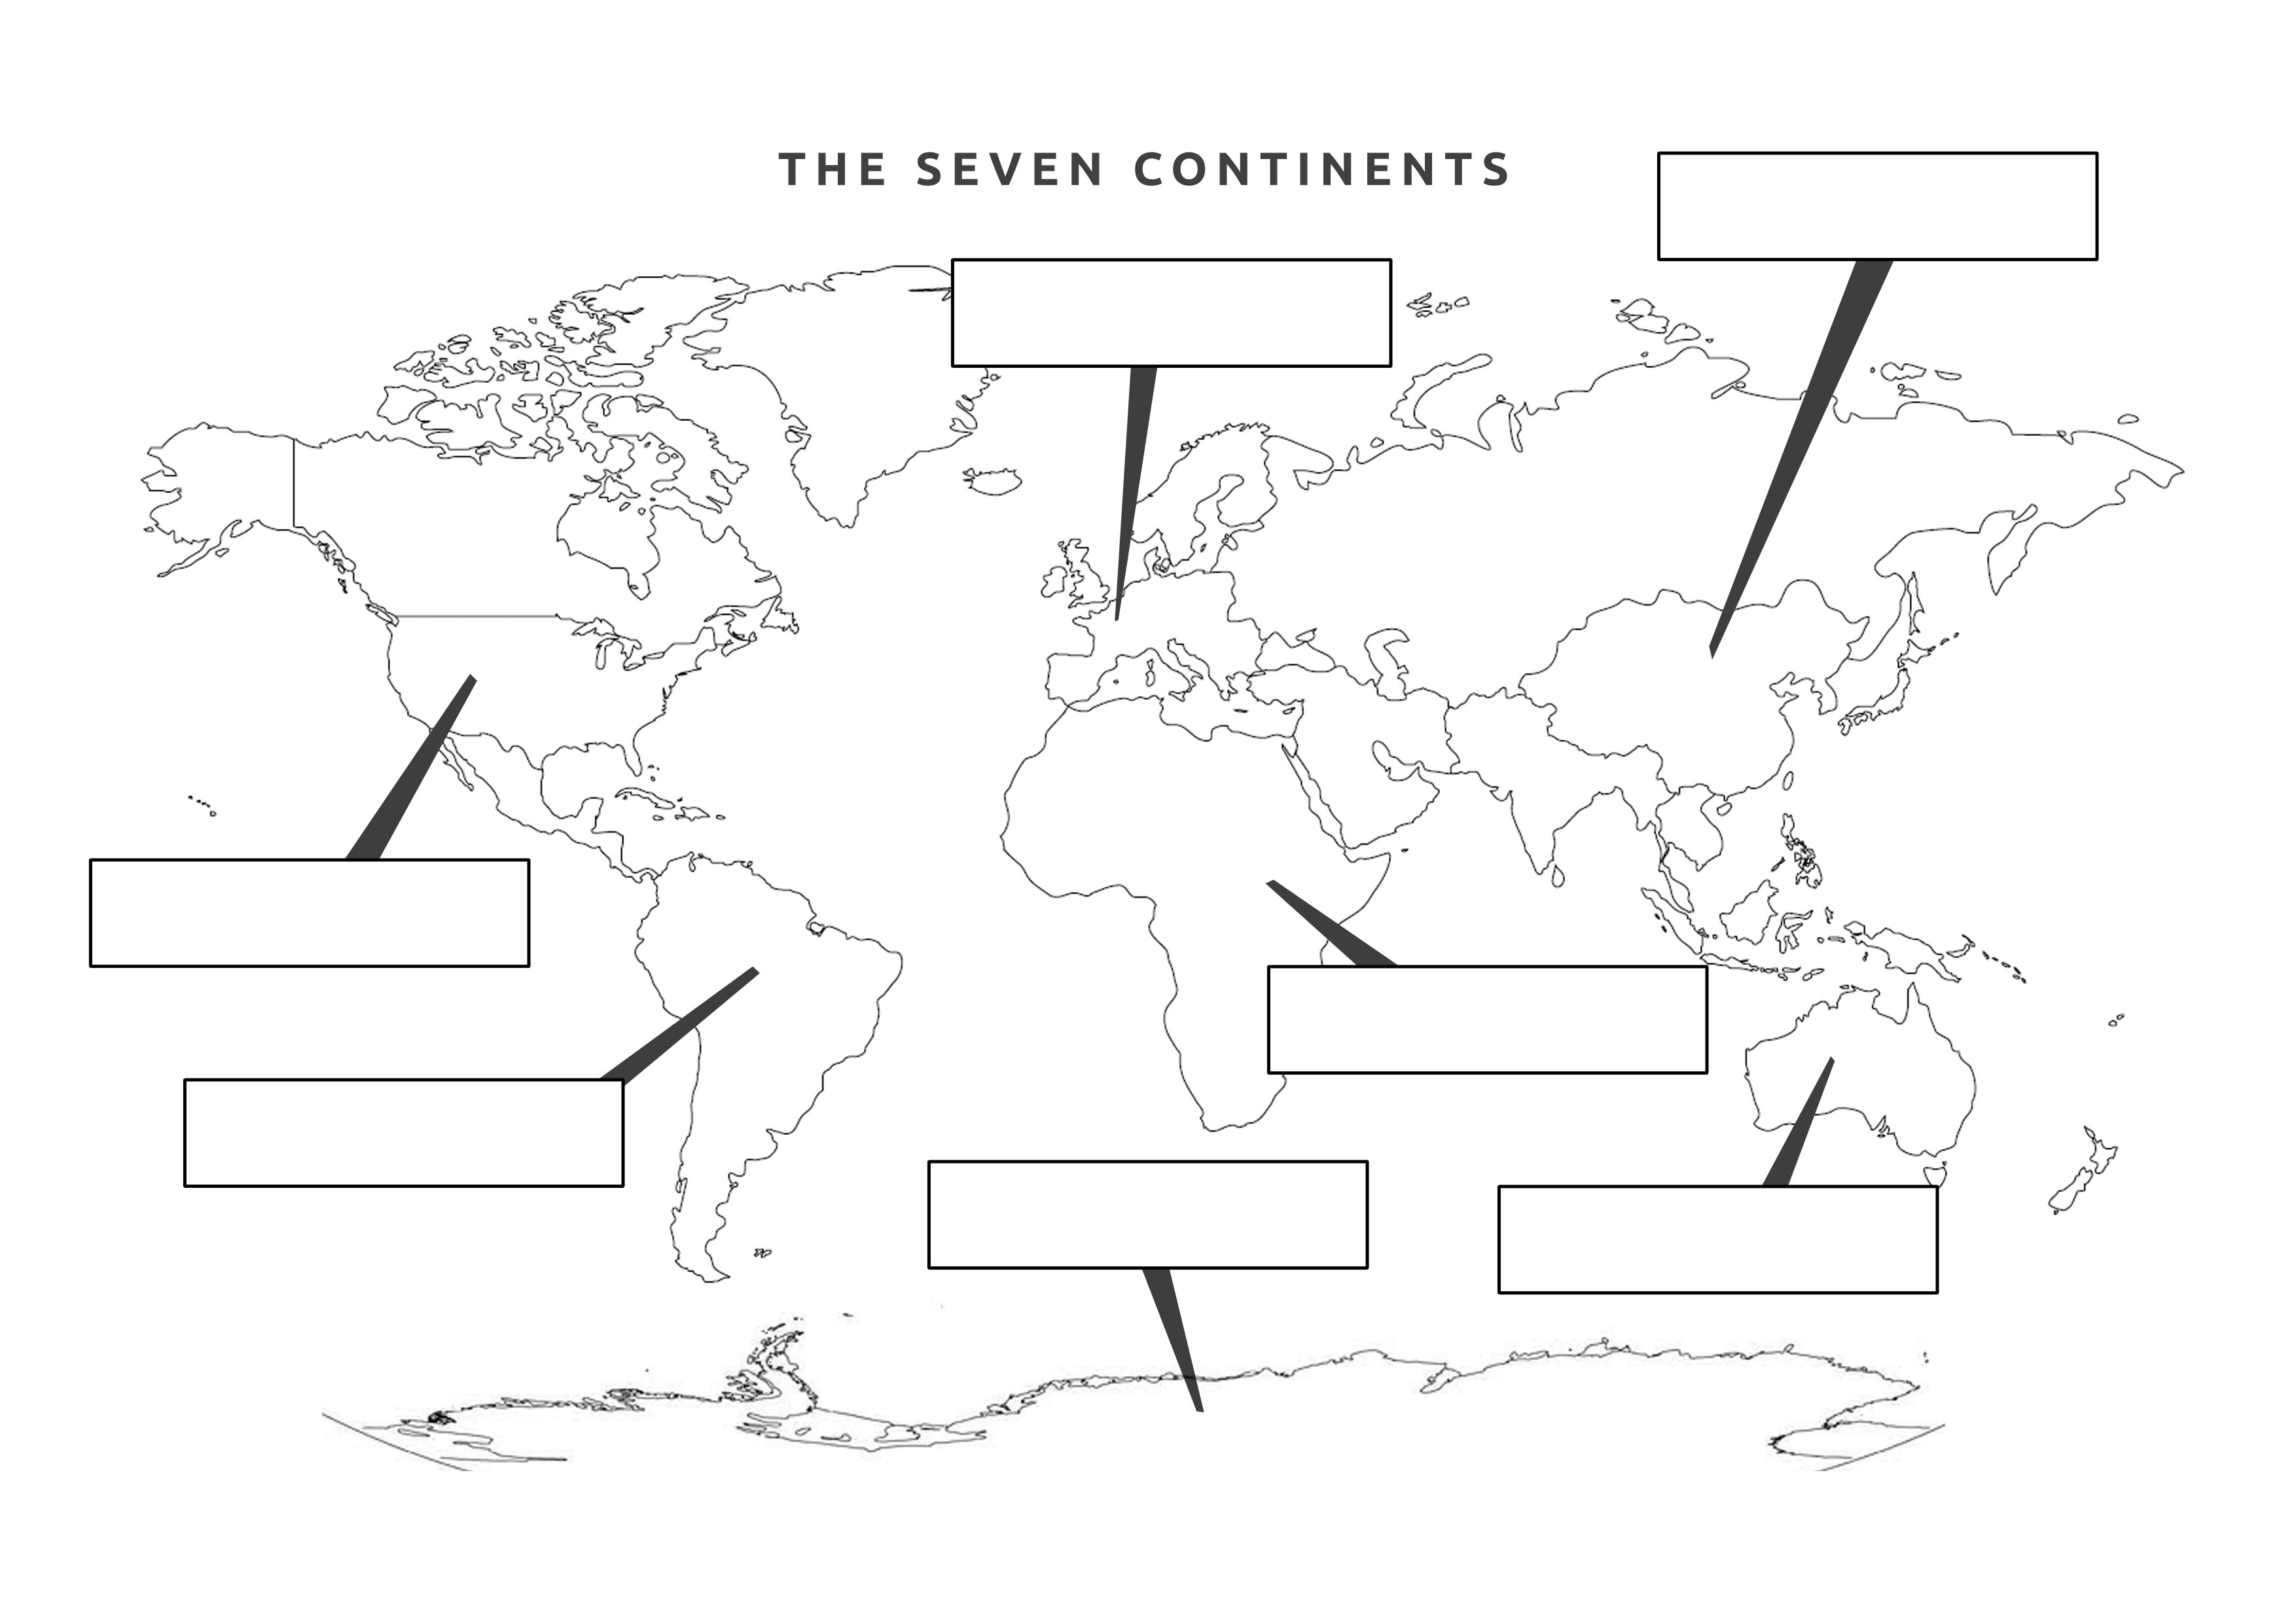 It's just a photo of Revered Map of Continents and Oceans Printable